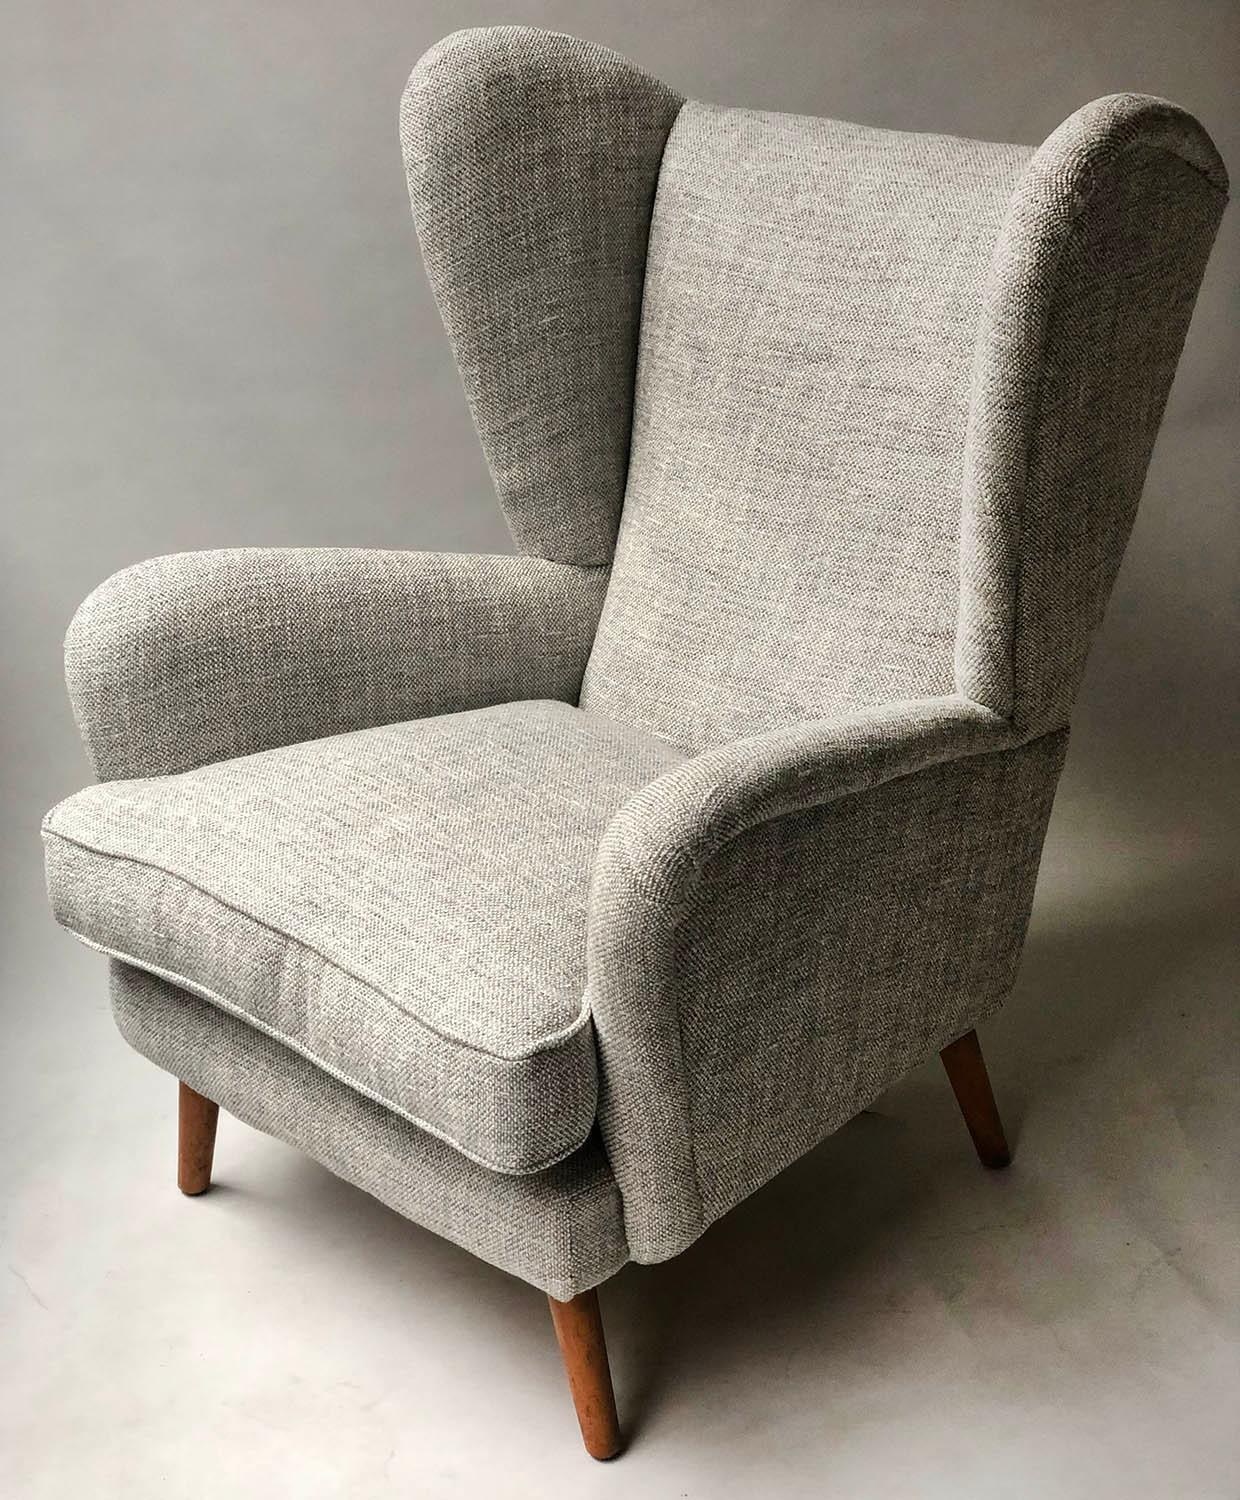 HOWARD KEITH ARMCHAIR, 1950's lounge chair newly upholstered in oatmeal soft tweed with splay